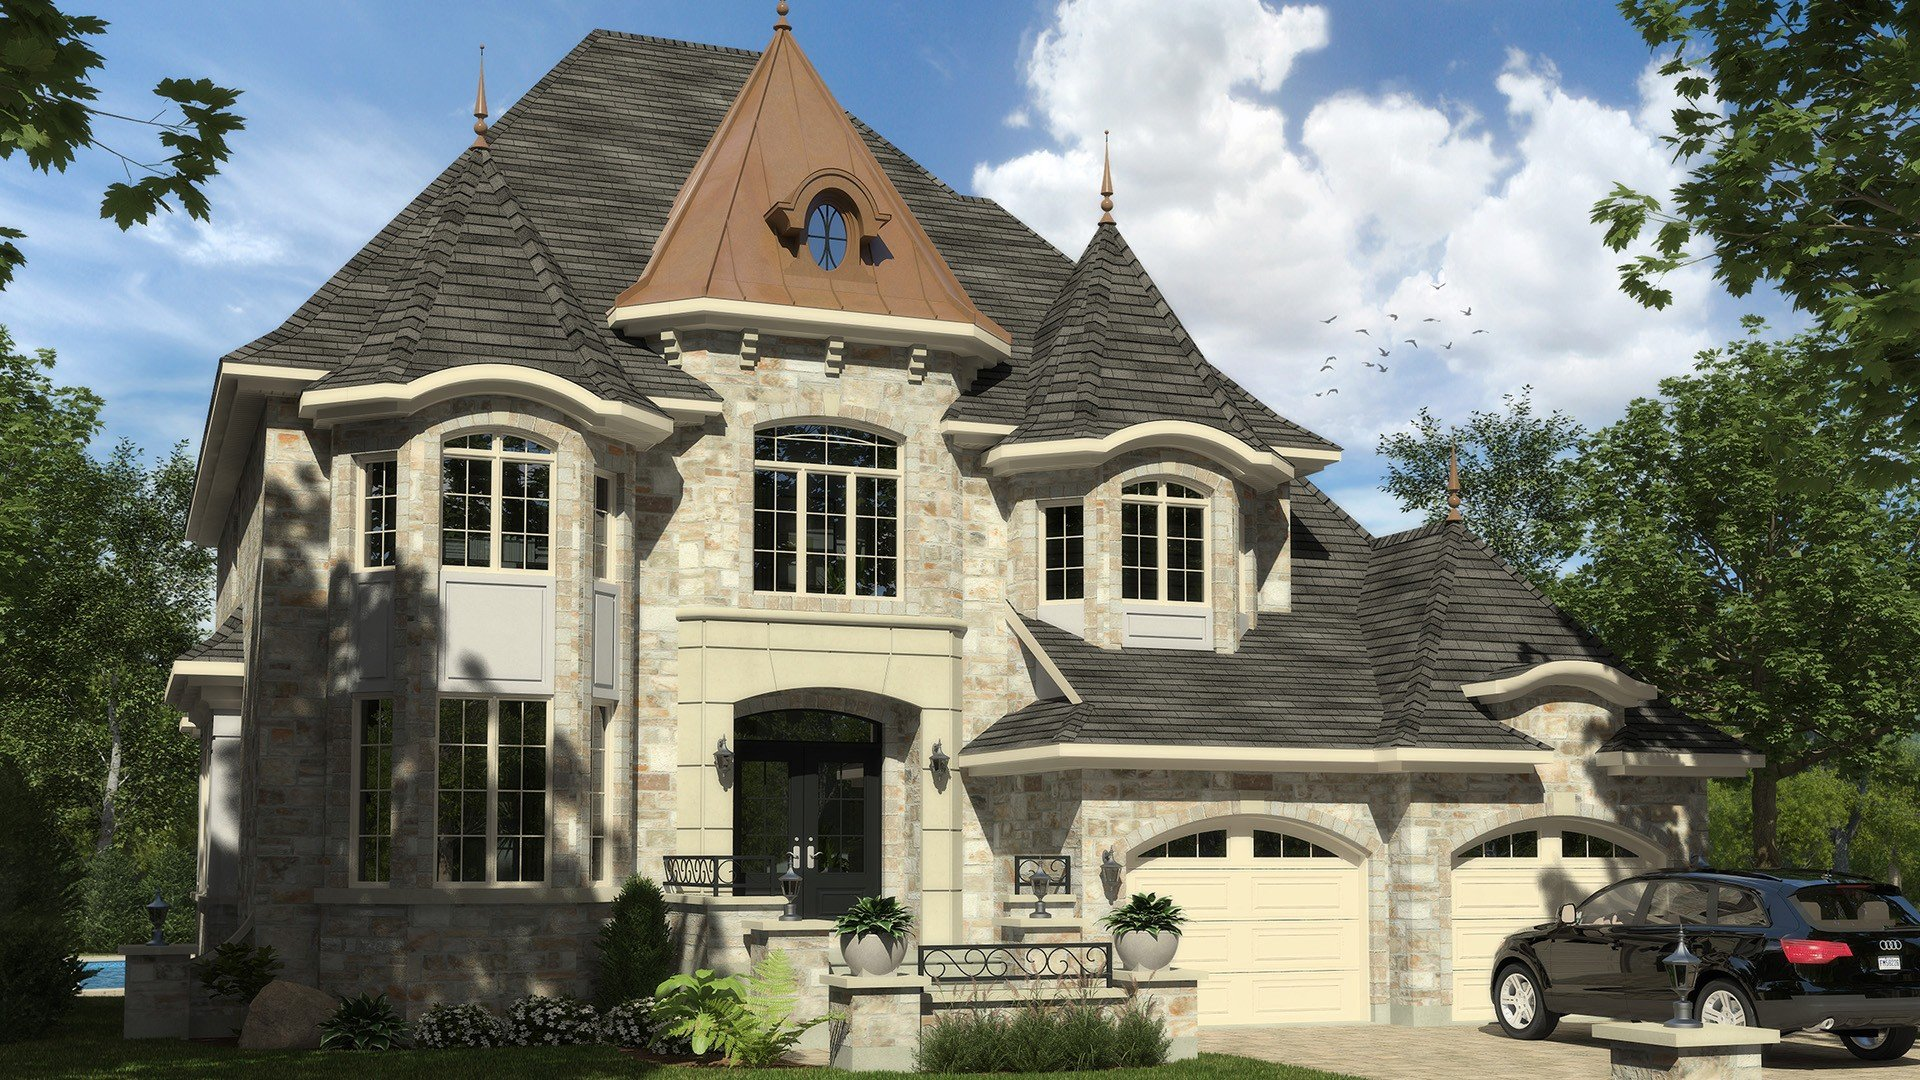 Cottage_Chateaufort_Luxury Home_Domicil